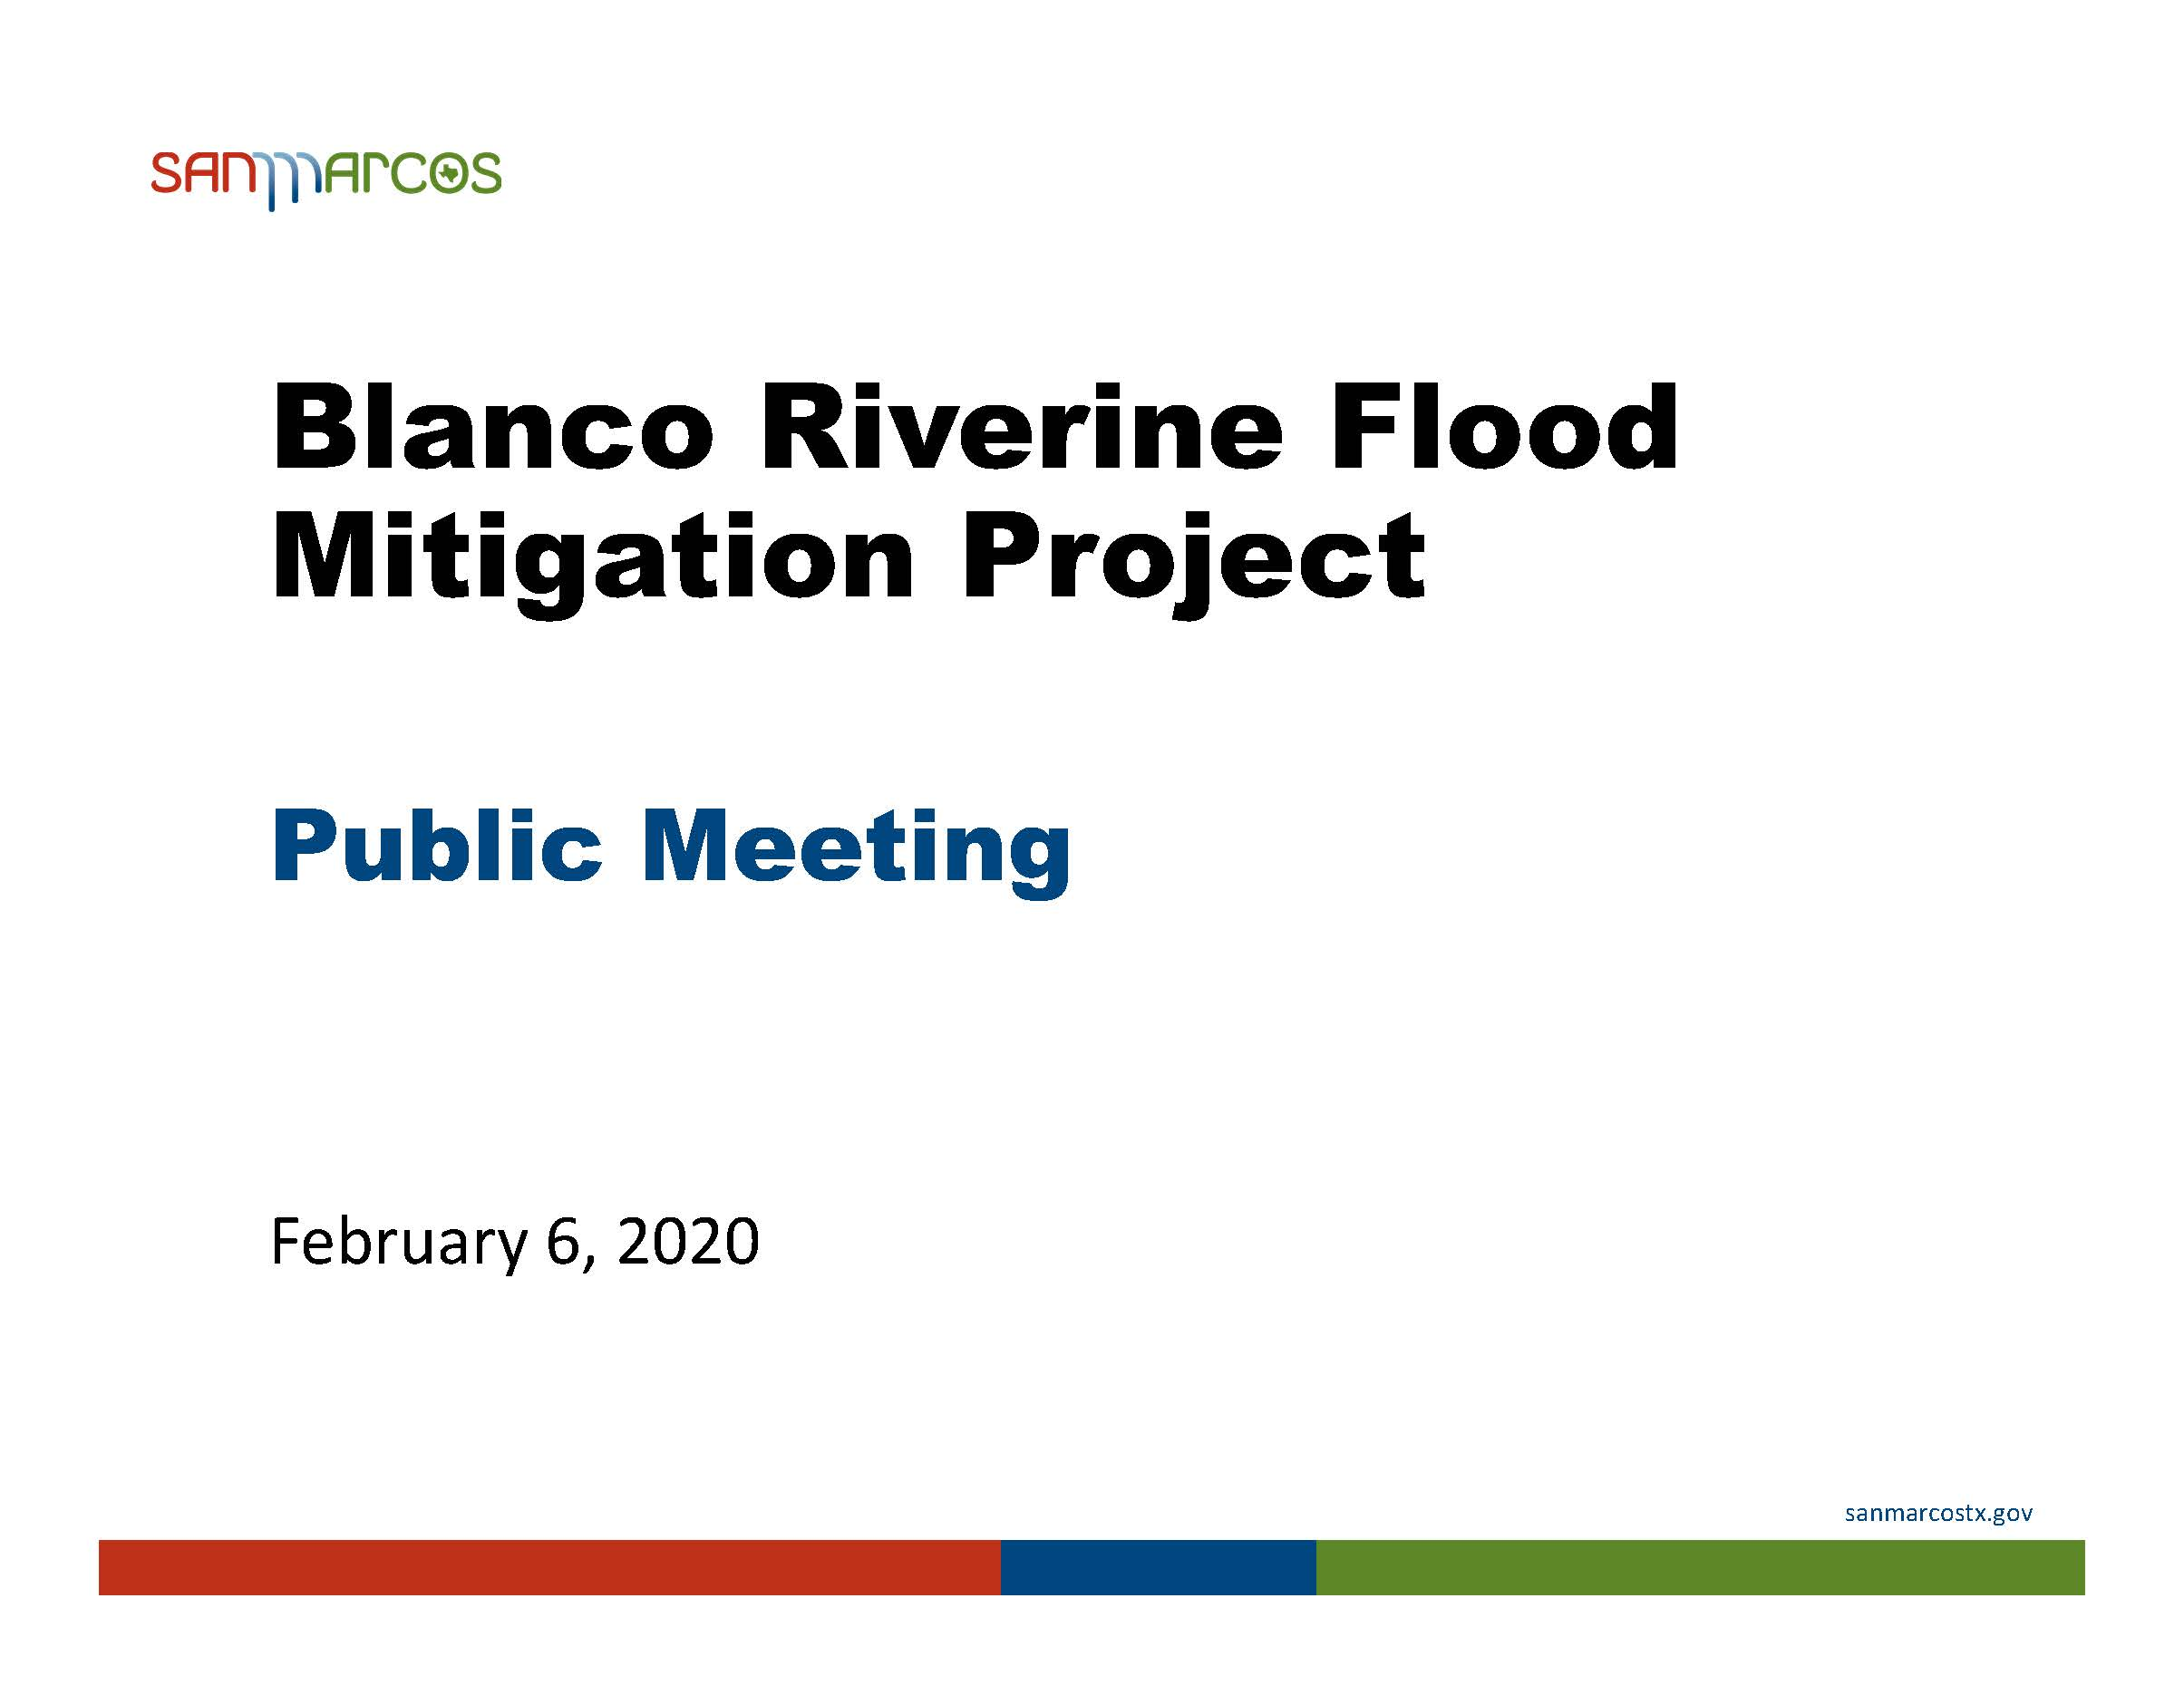 Blanco Riverine Flood Mitigation Project Public Meeting February 6, 2020 Presentation (PDF)